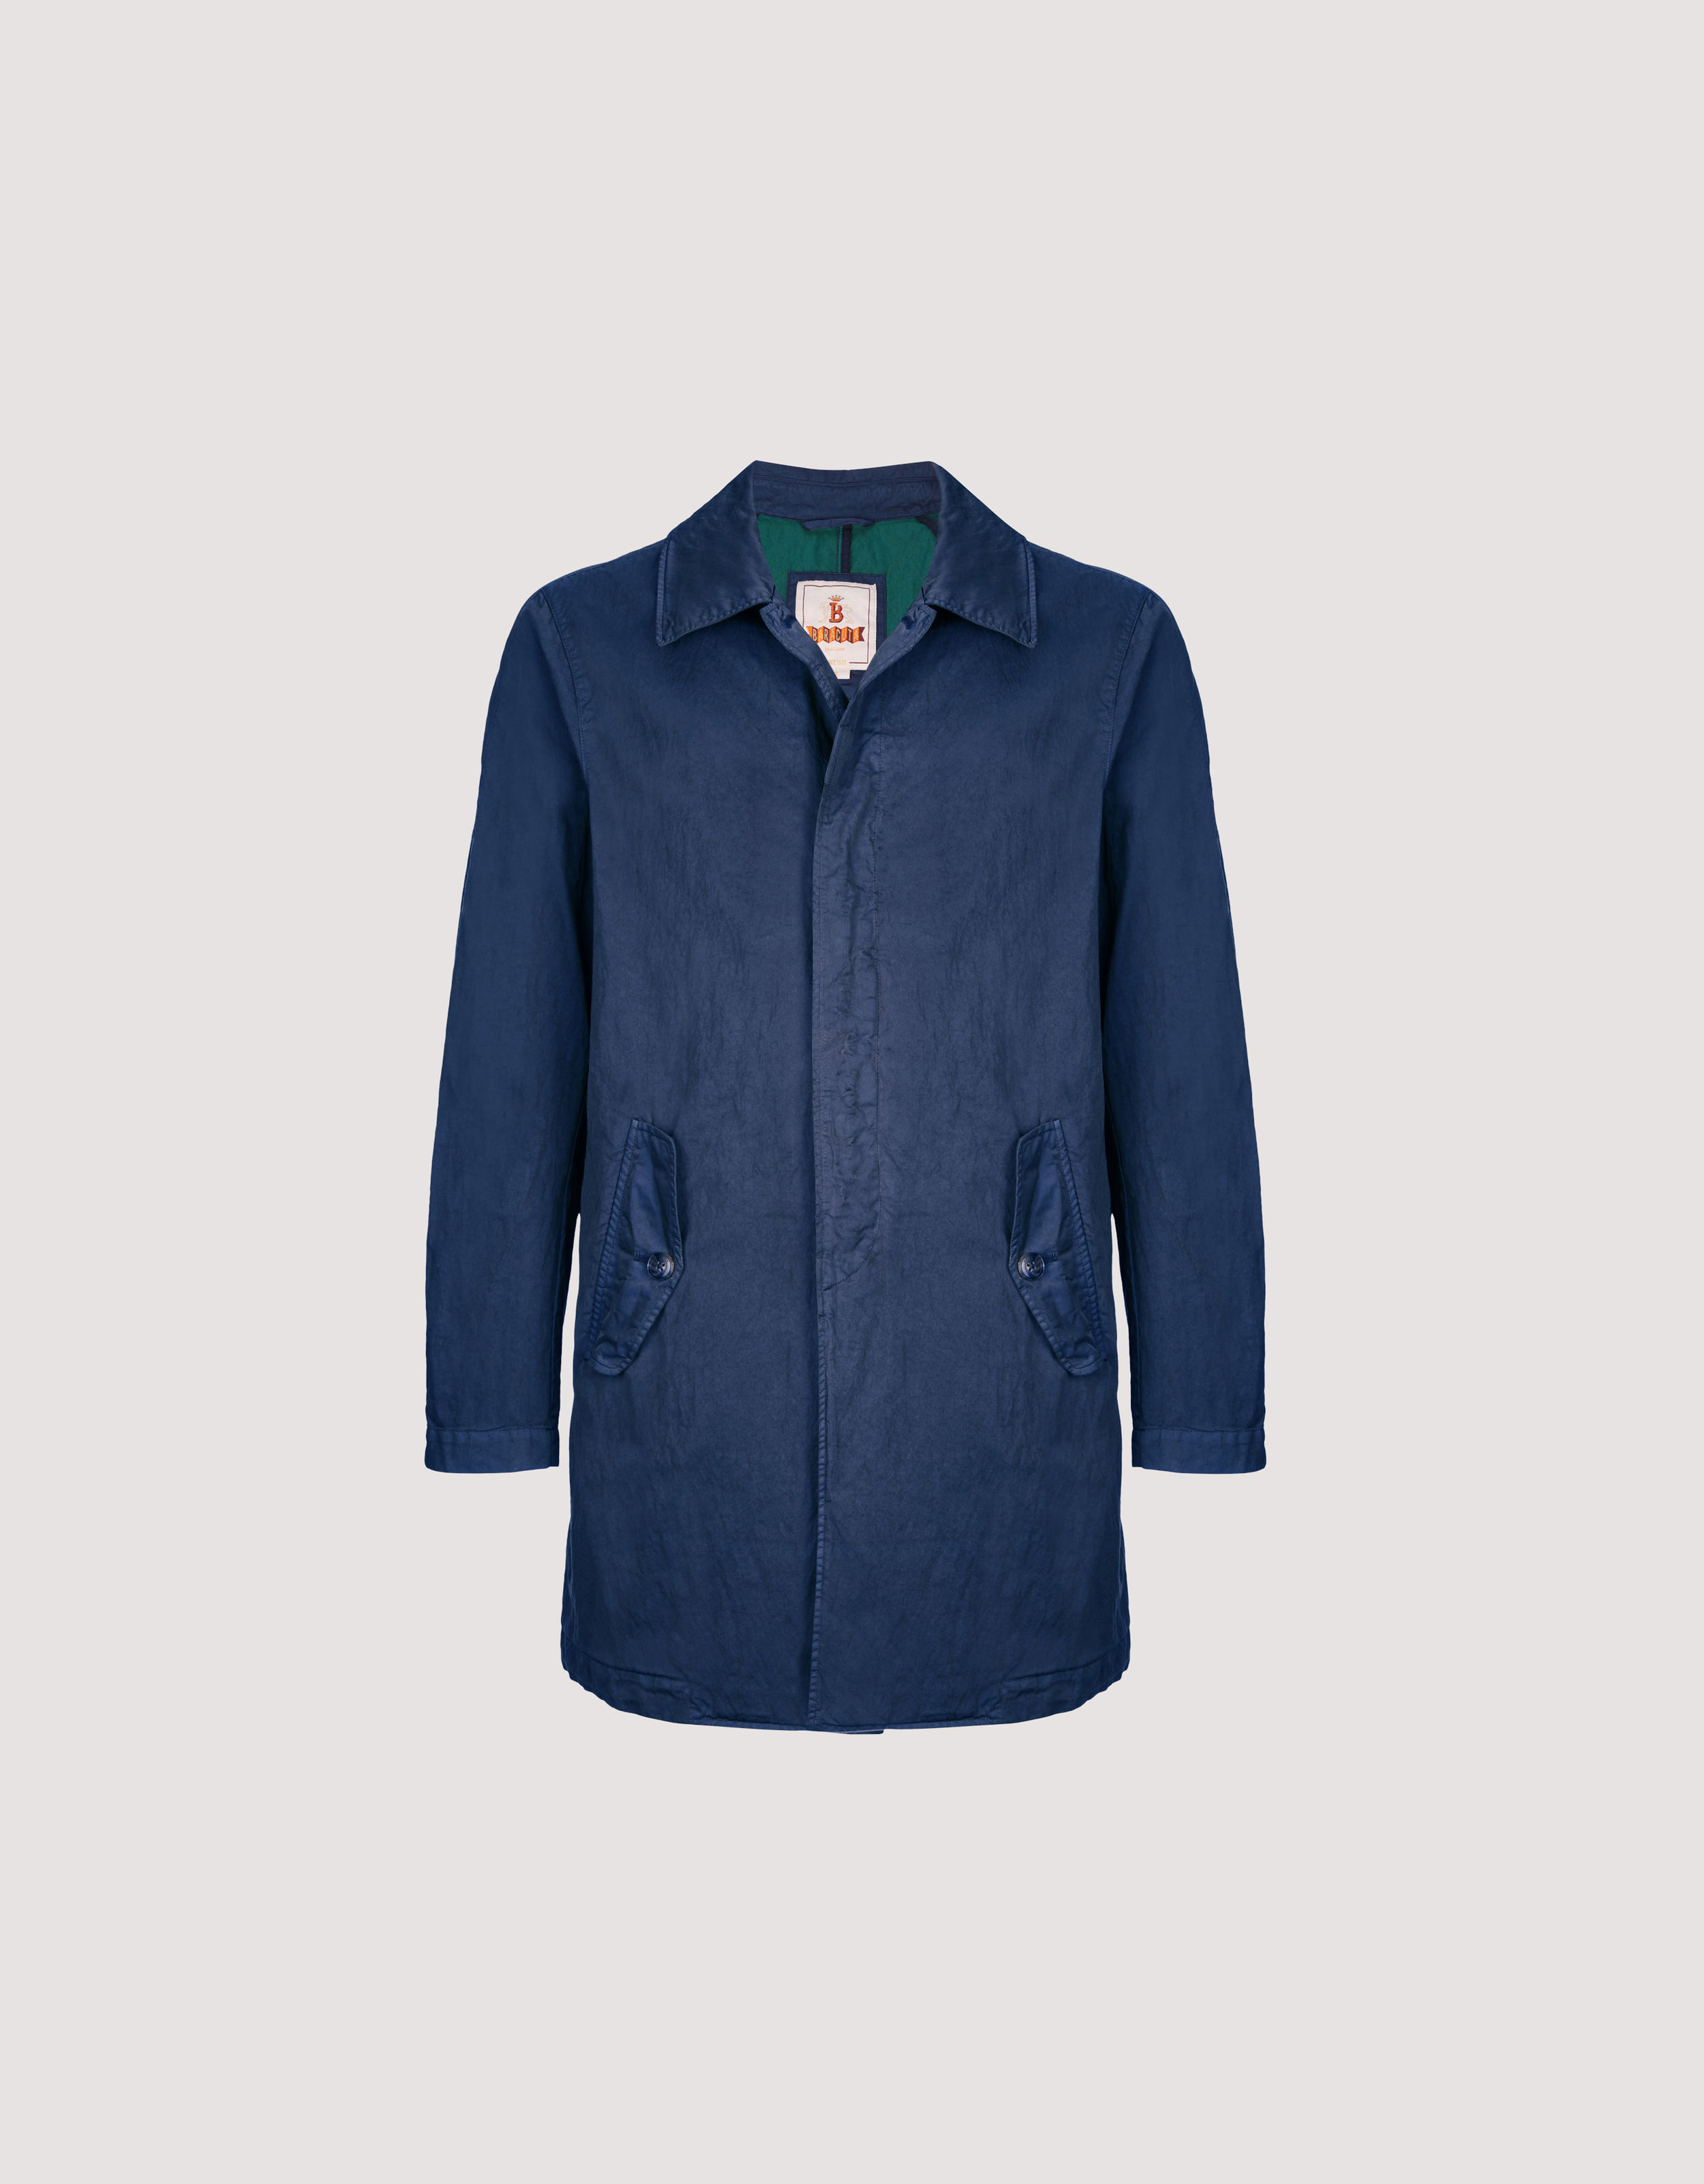 Baracuta overcoat - £475 - Make an impression with this double-dyed overcoat, which has a rakish shimmery effect